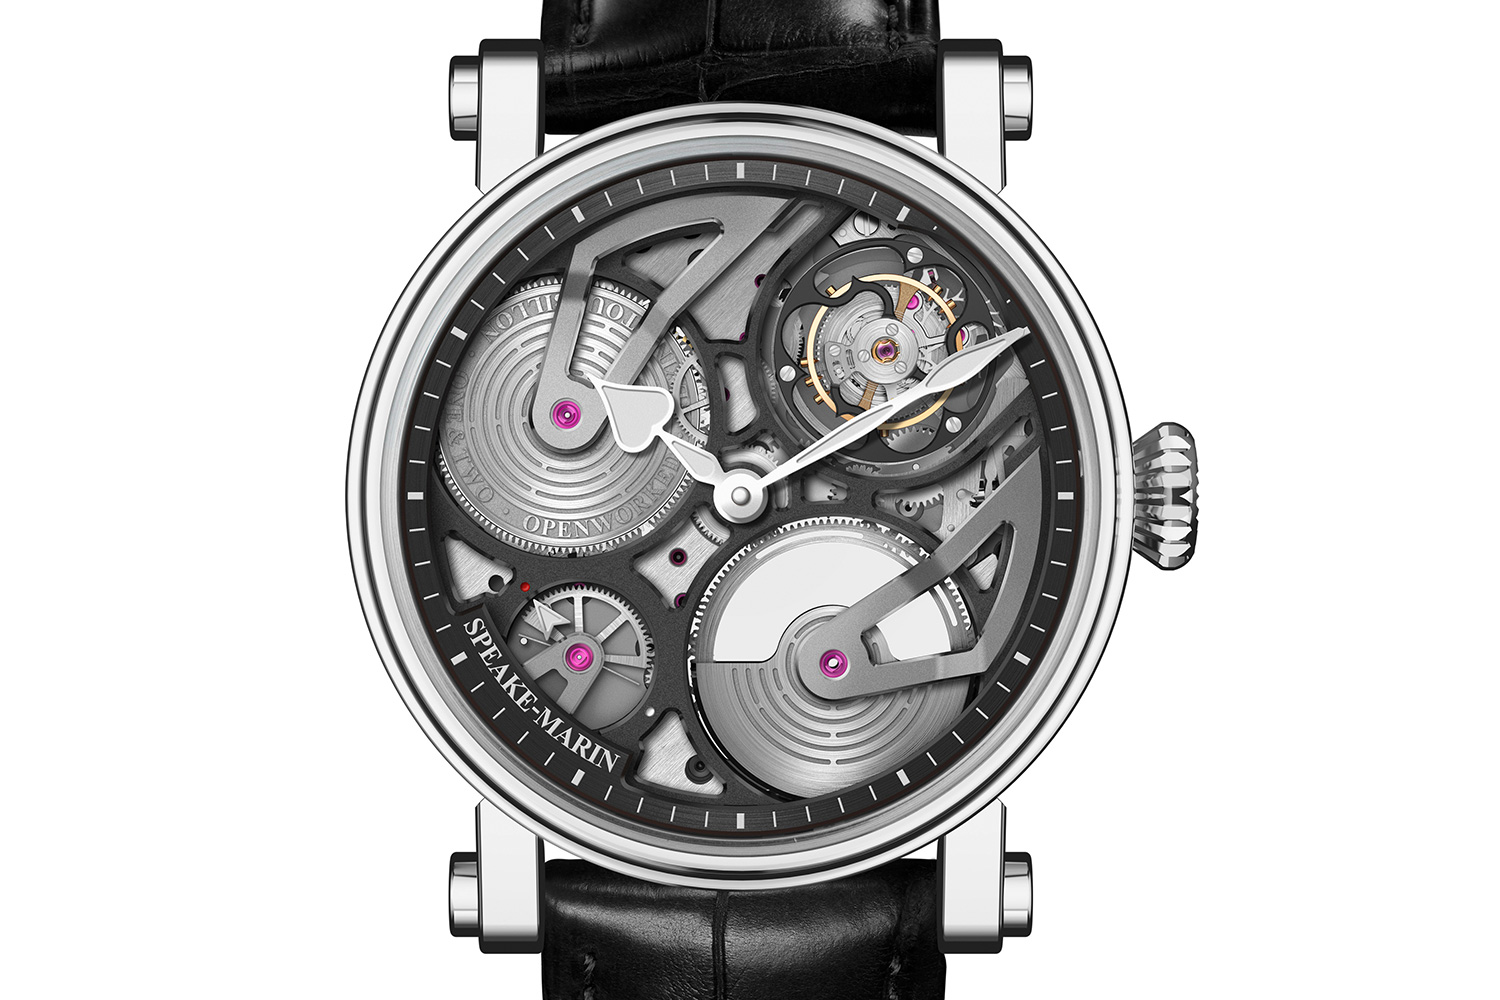 Speake-Marin One&Two Openworked Tourbillon